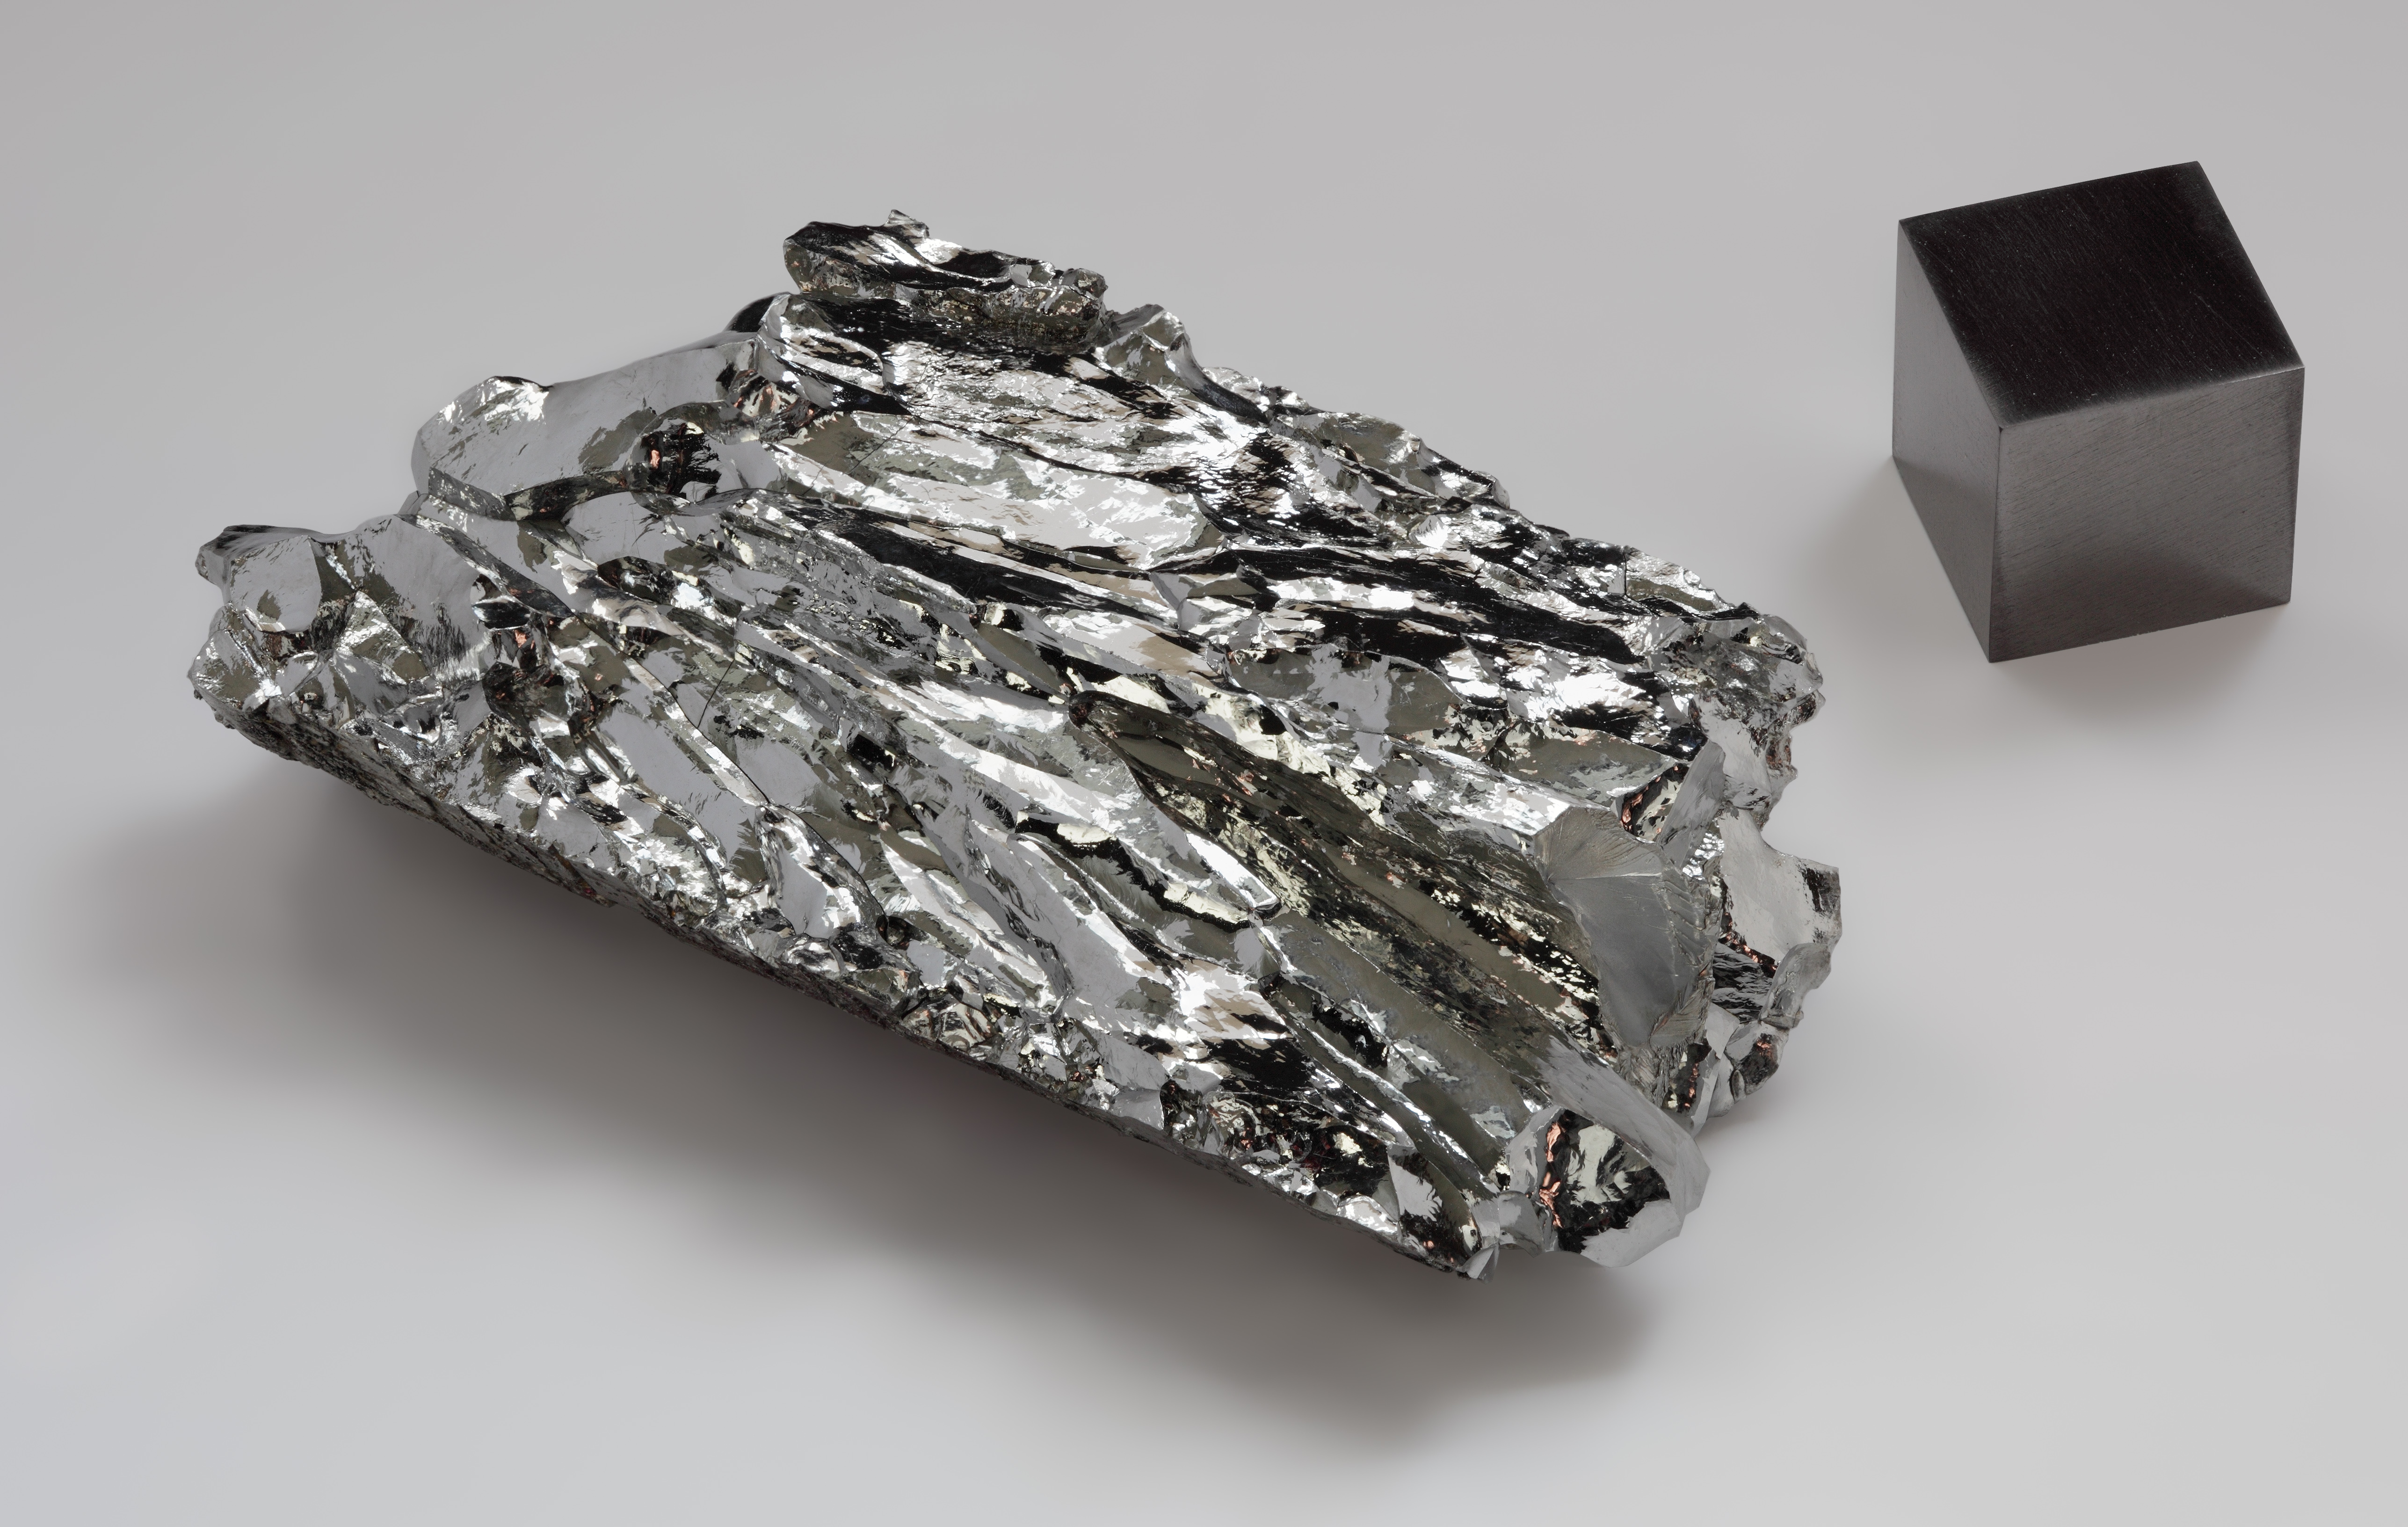 radiopotassium dating definition Potassium-argon dating: potassium-argon dating,, method of determining the time of origin of rocks by measuring the ratio of radioactive argon to radioactive.